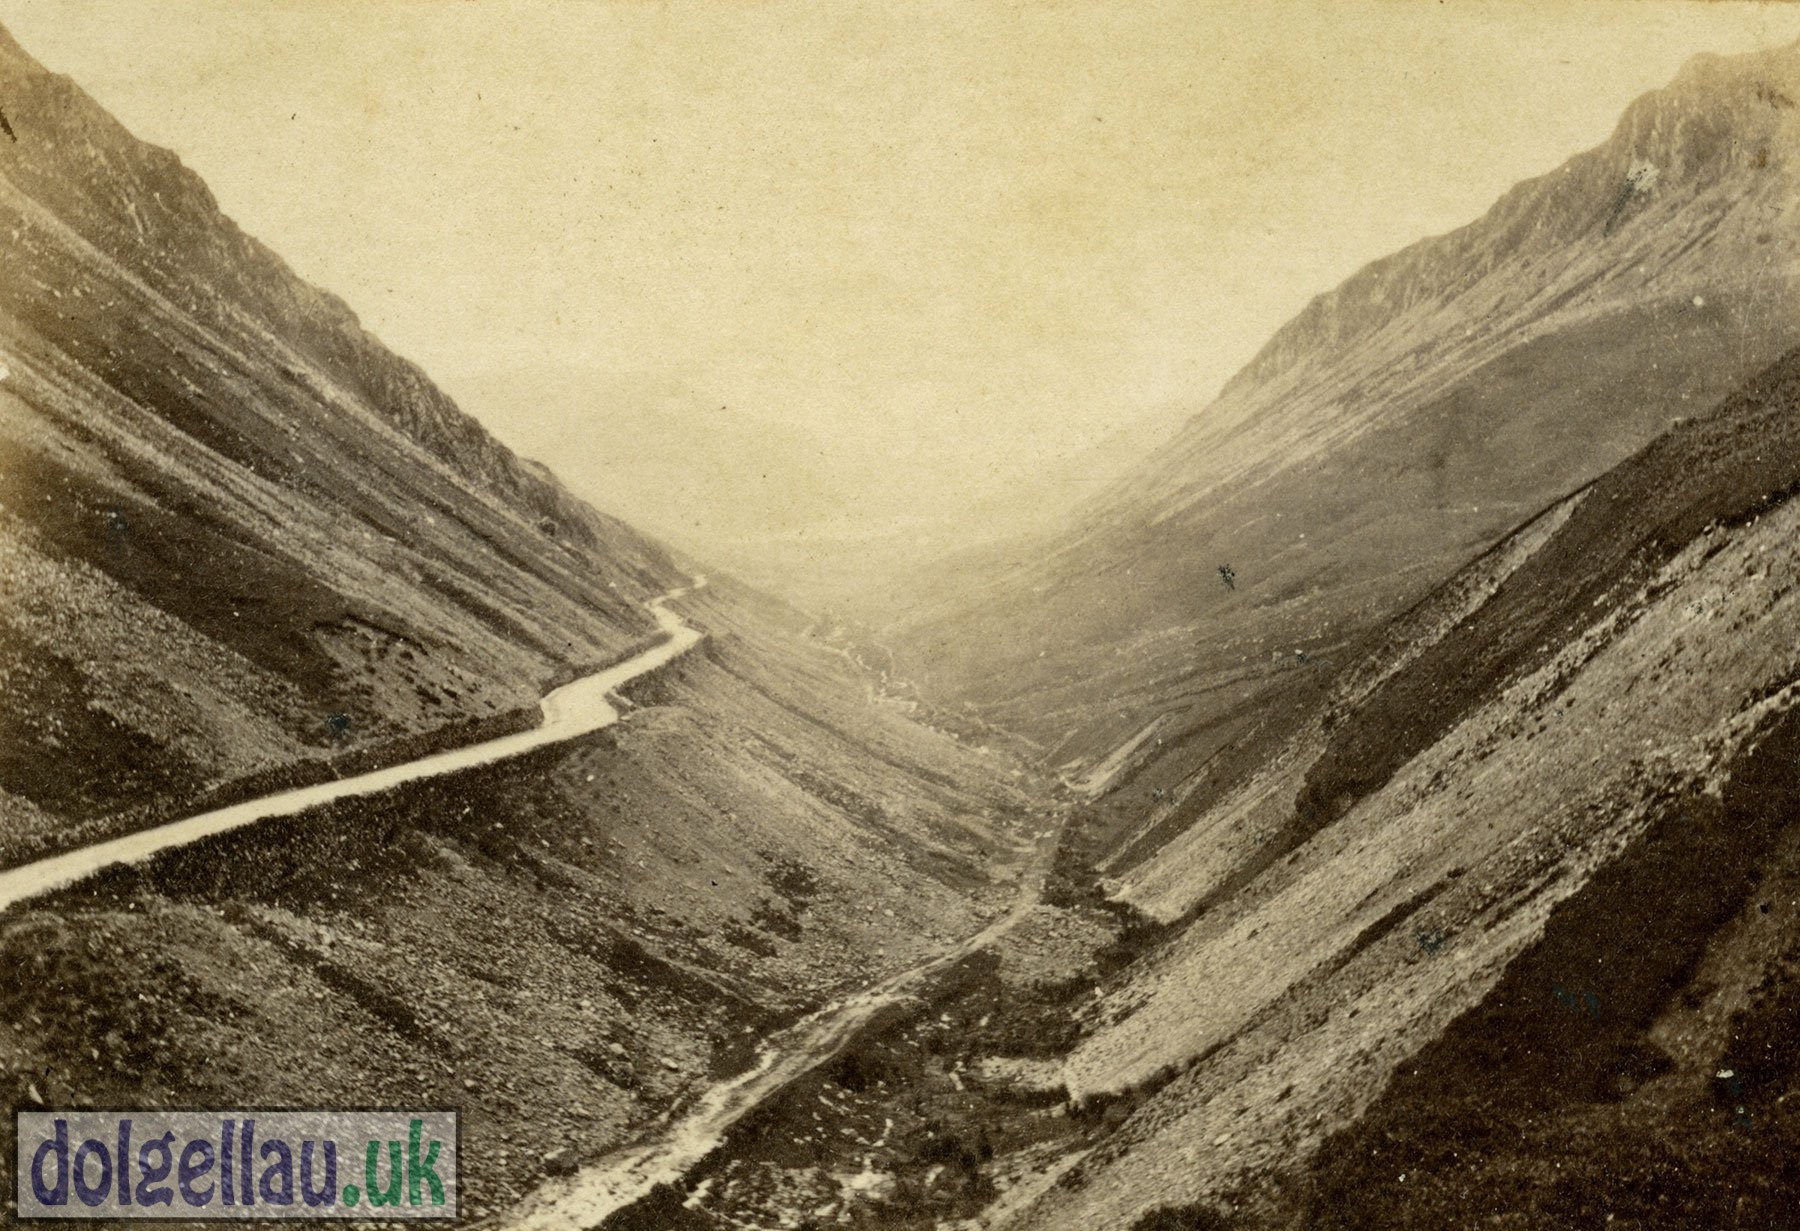 1866 Album Page - The Pass of Talyllyn. 26th September 1866.